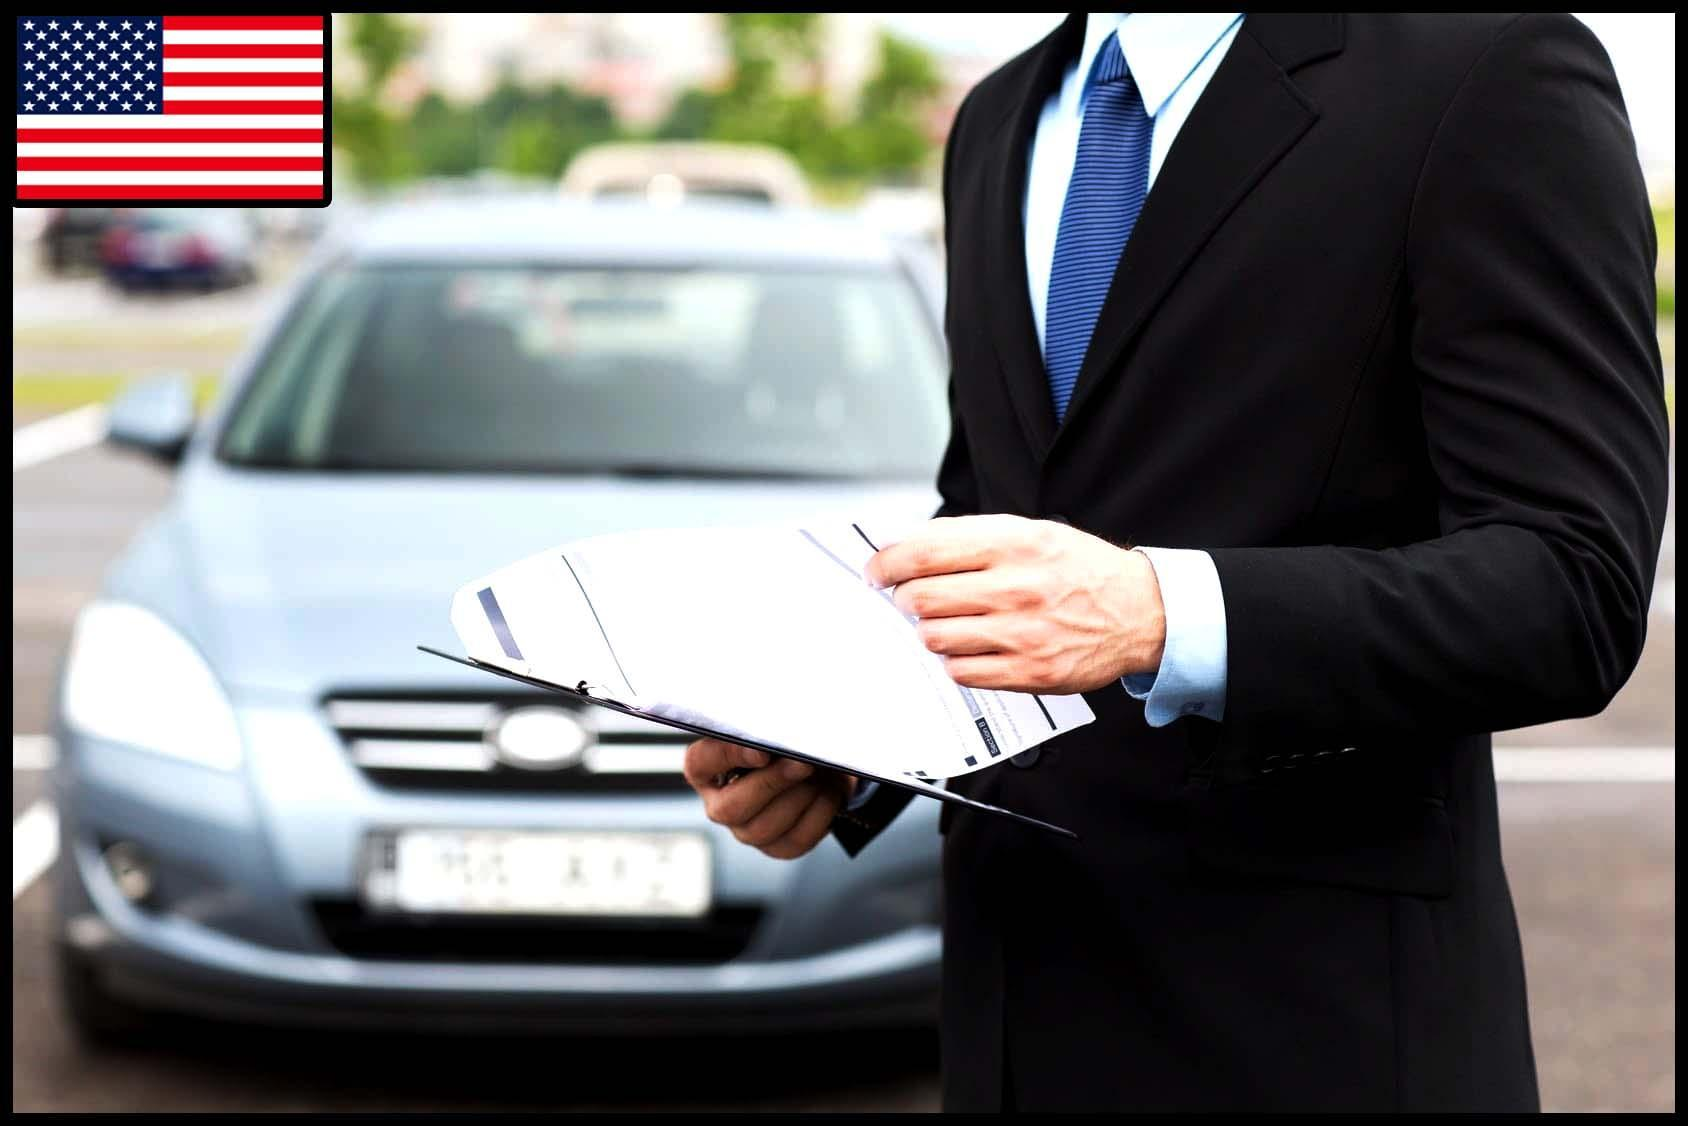 used car dealerships - used cars usa for Android - APK Download